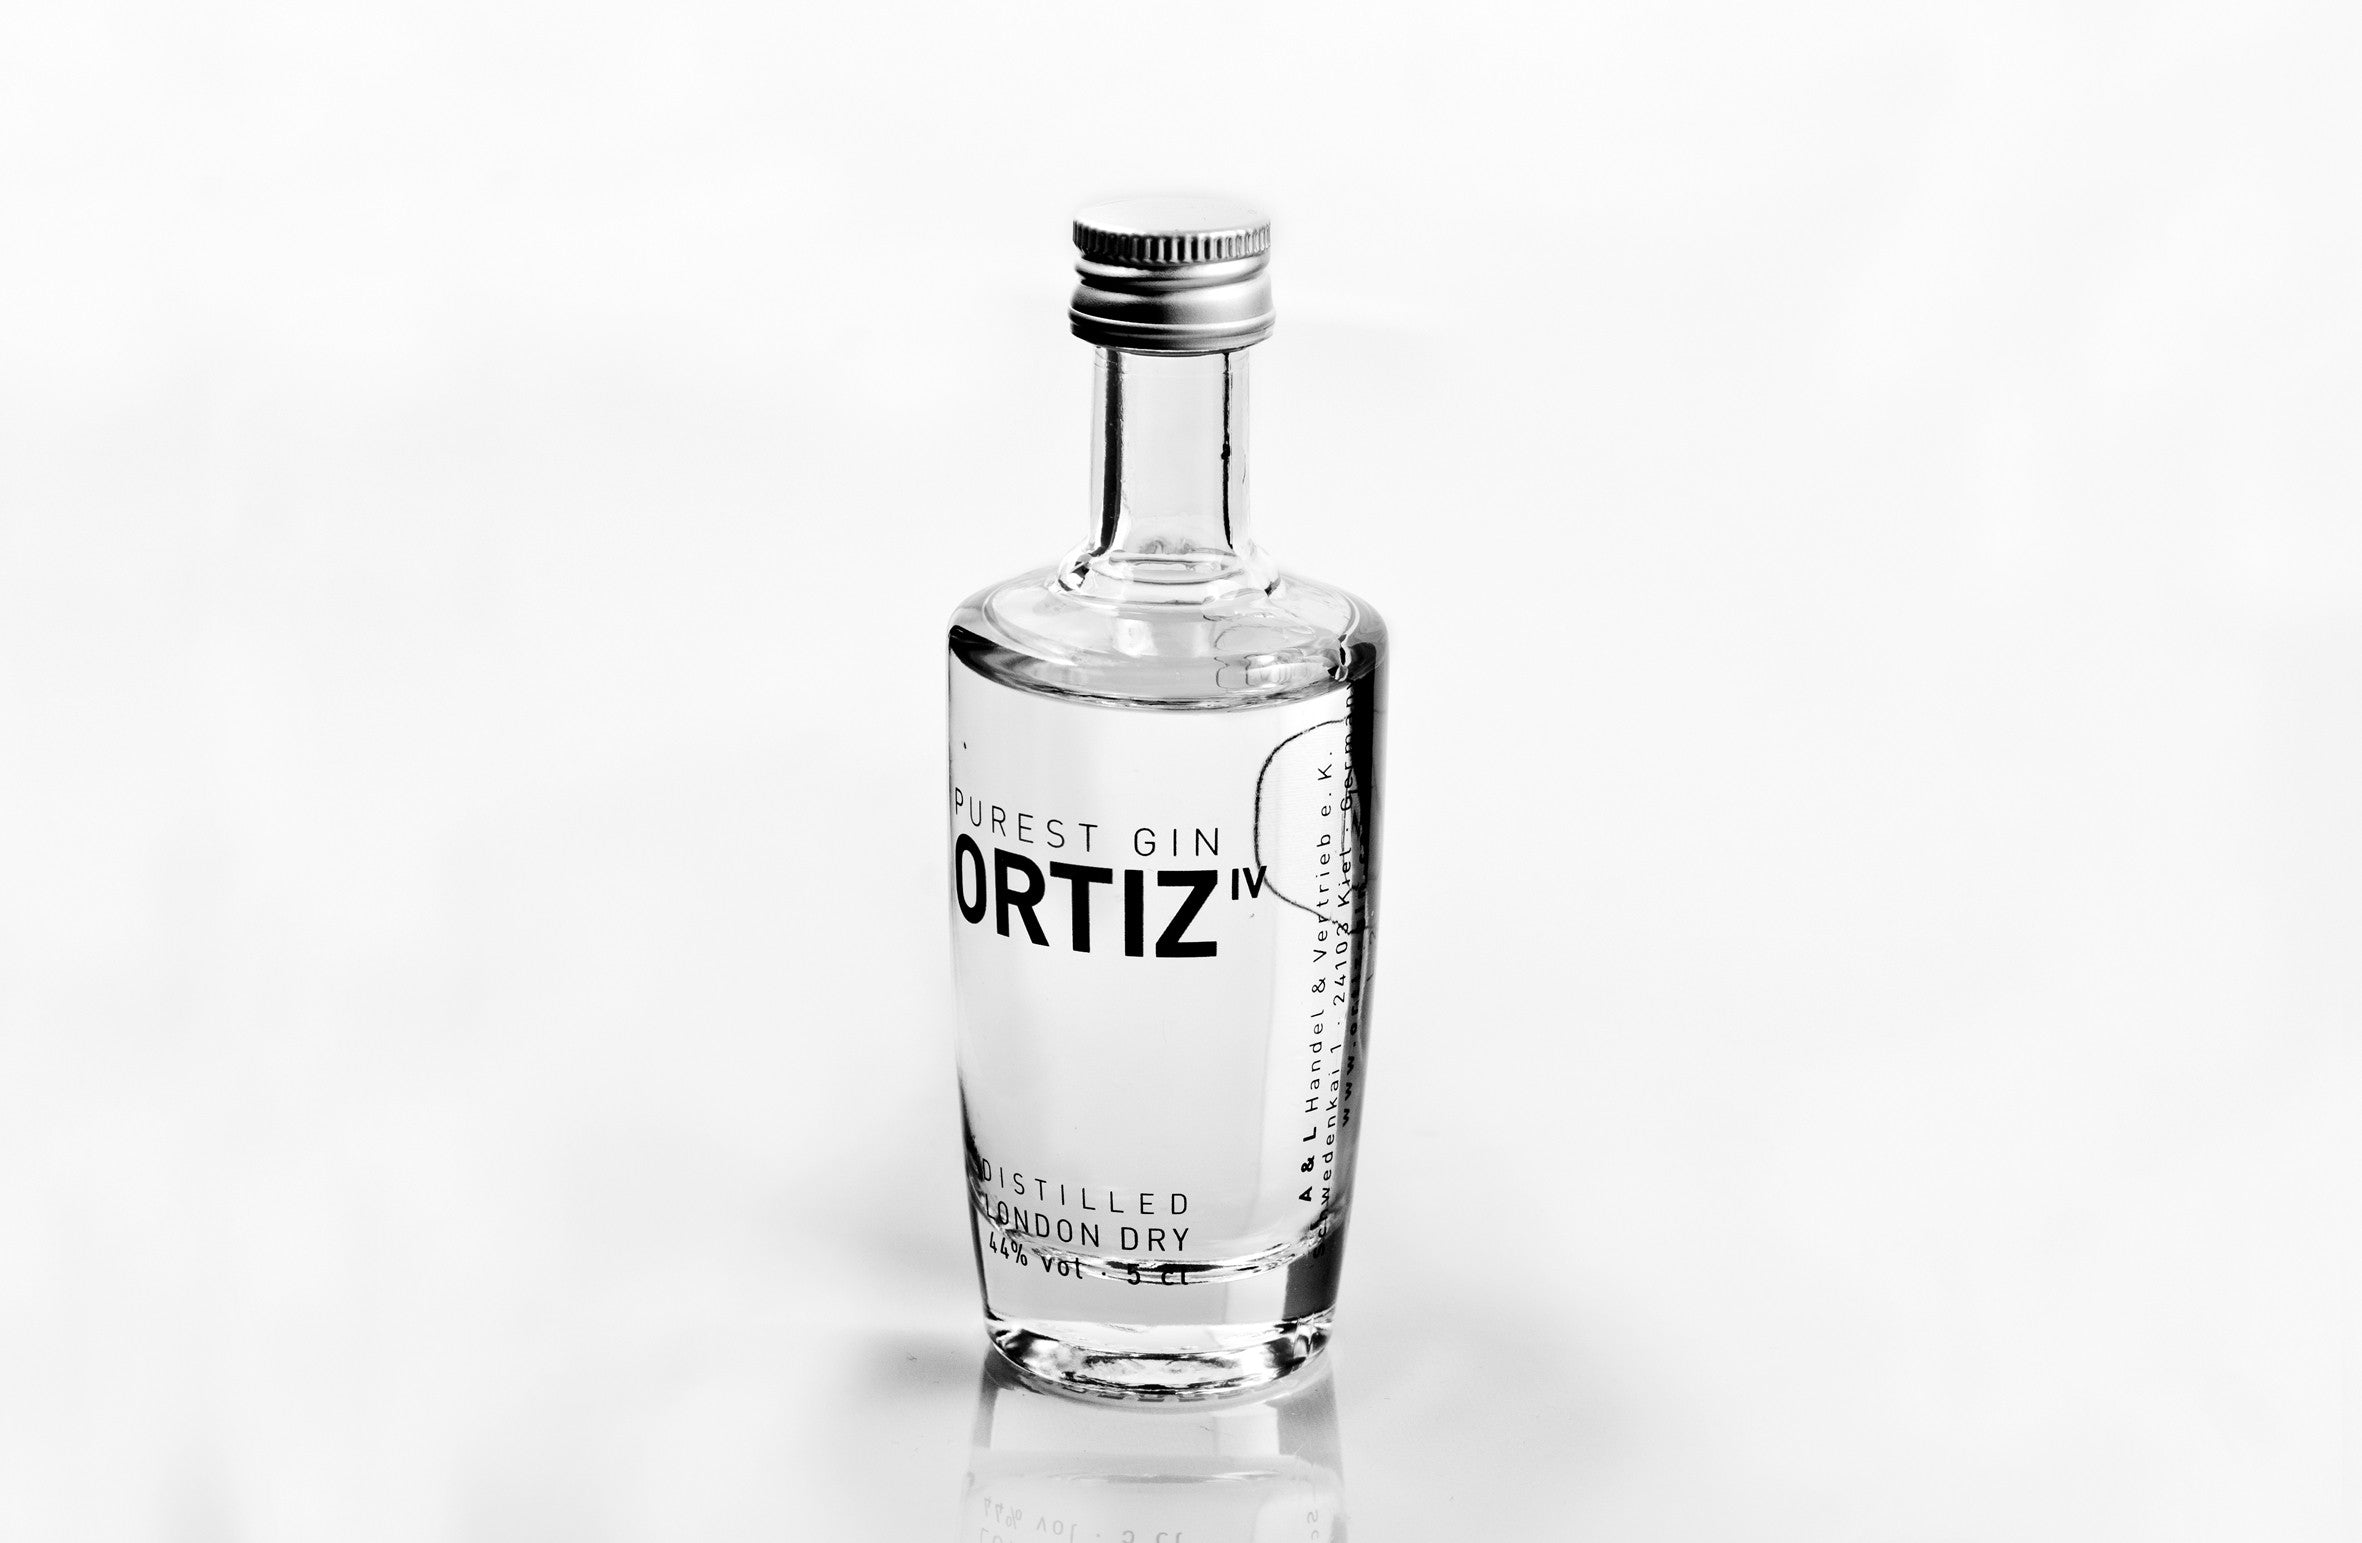 1 mini bottle<br>ORTIZ IV PUREST GIN<br>0.05l